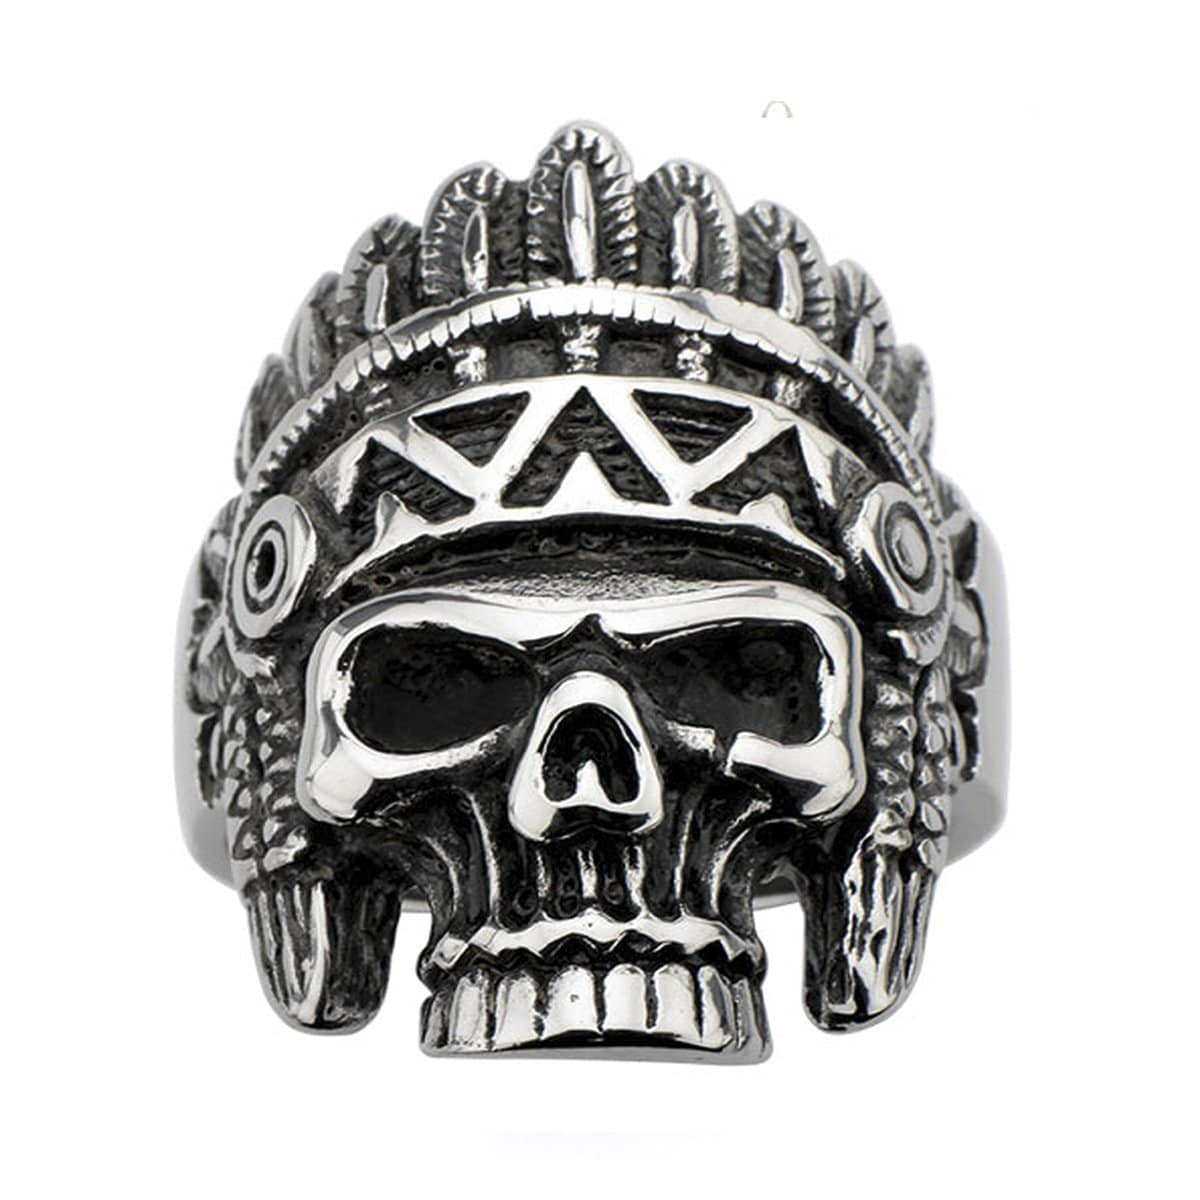 Darkened Silver Stainless Steel Tribal Chief Hallowed Jaw Skull Ring - Inox Jewelry India